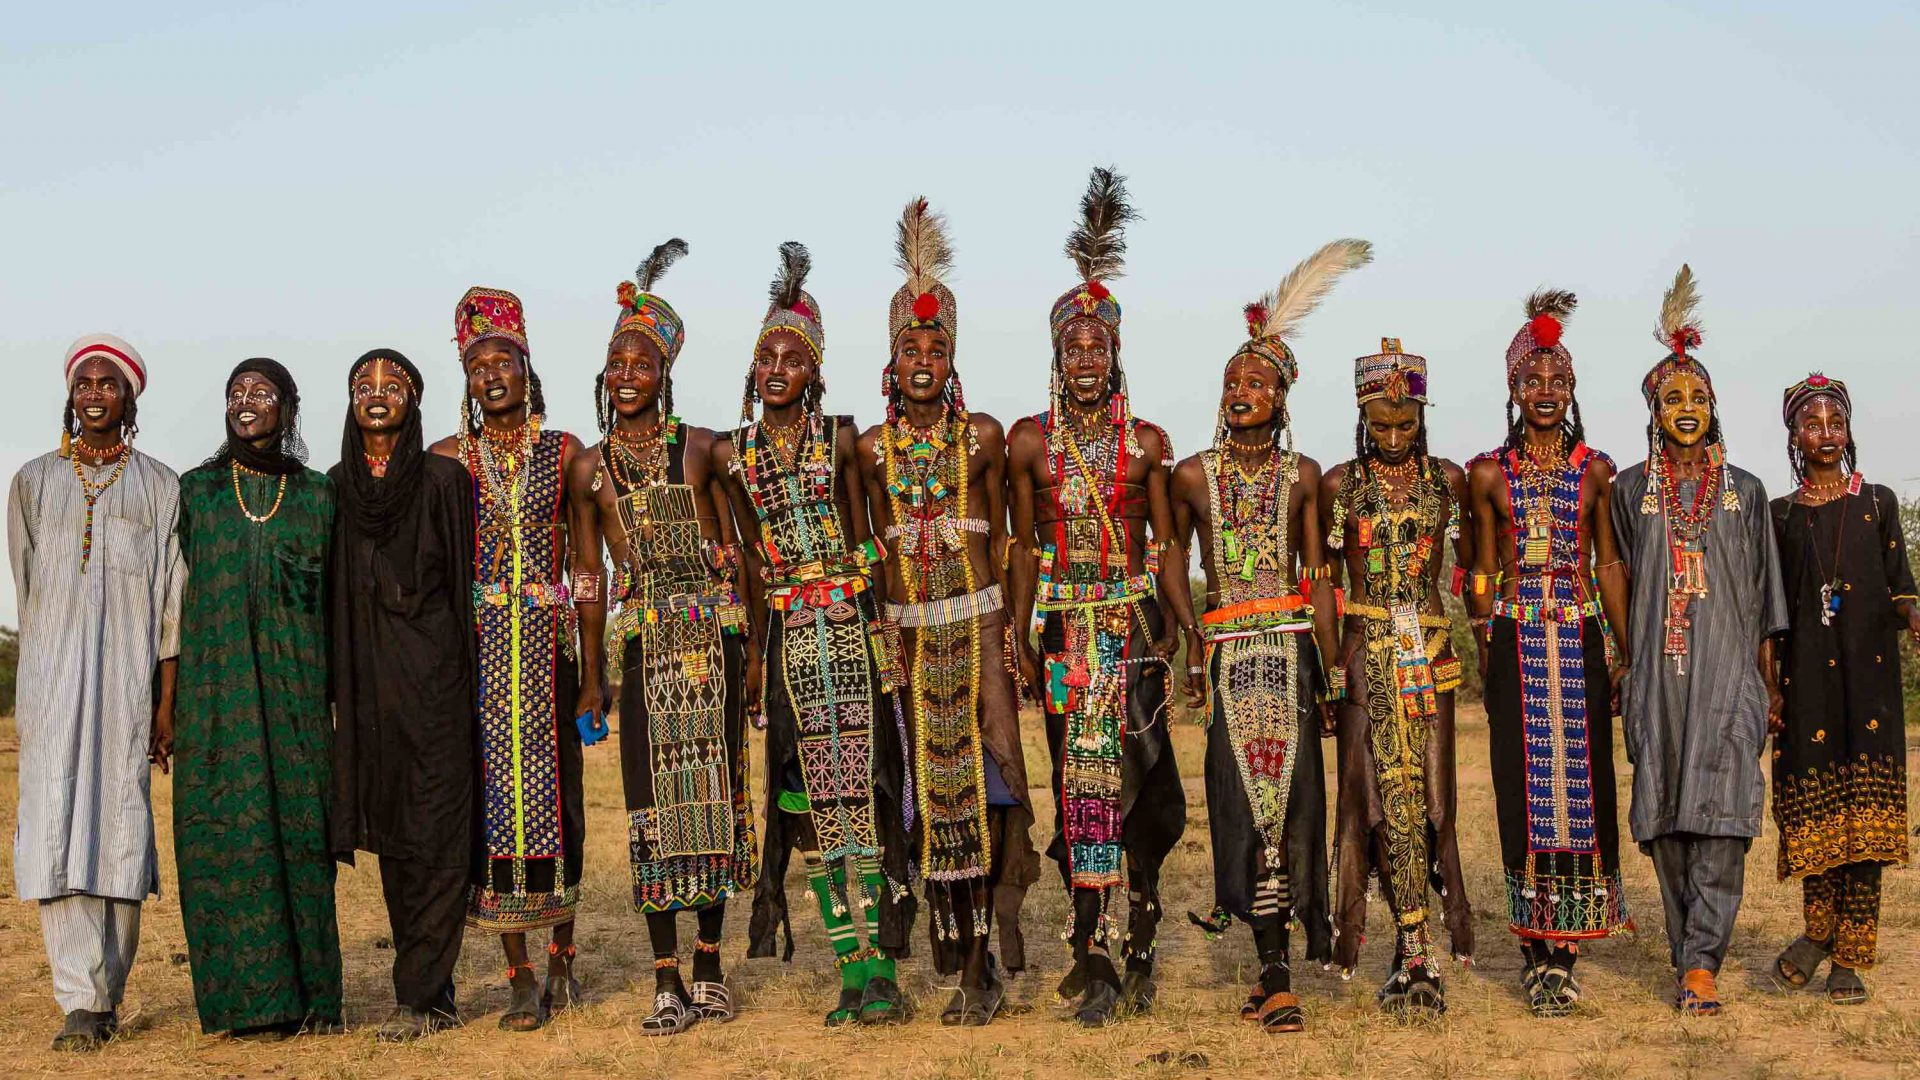 A long line of Wodaabe men and boys, wearing bejeweled leather tunics and sparkling crowns and feathers.